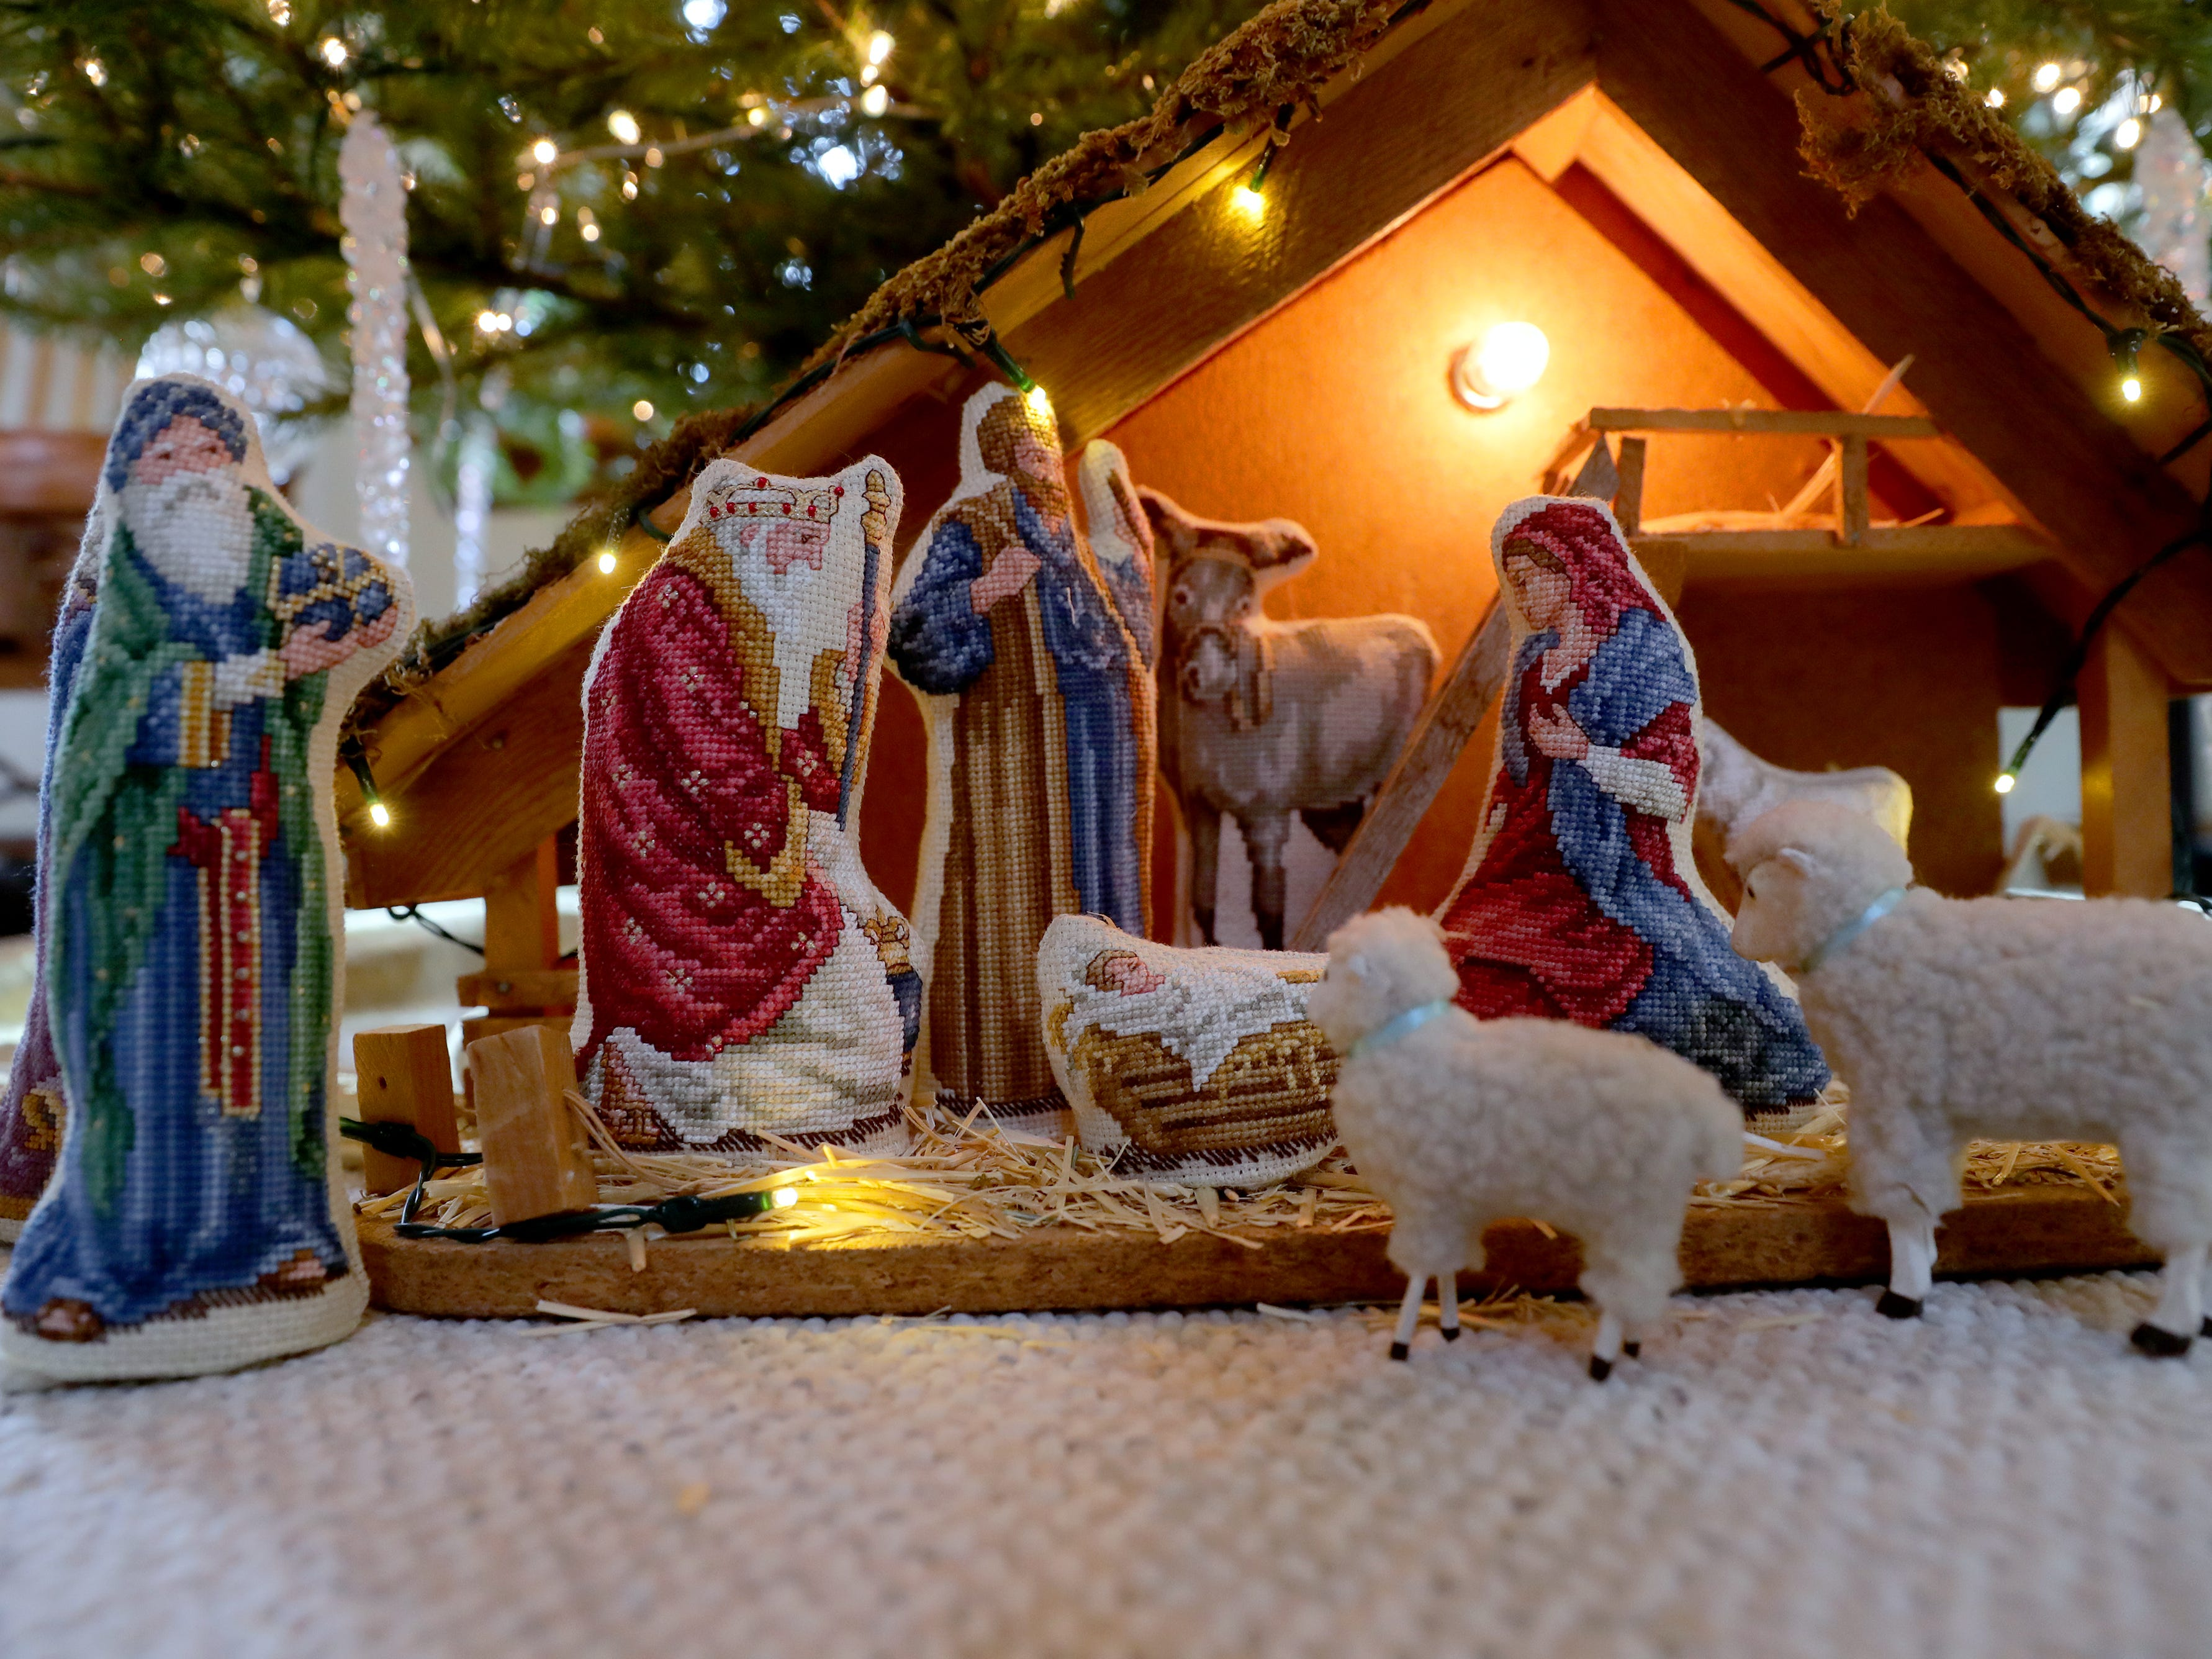 A nativity scene includes cross-stitched figures that Renee Sirny made.